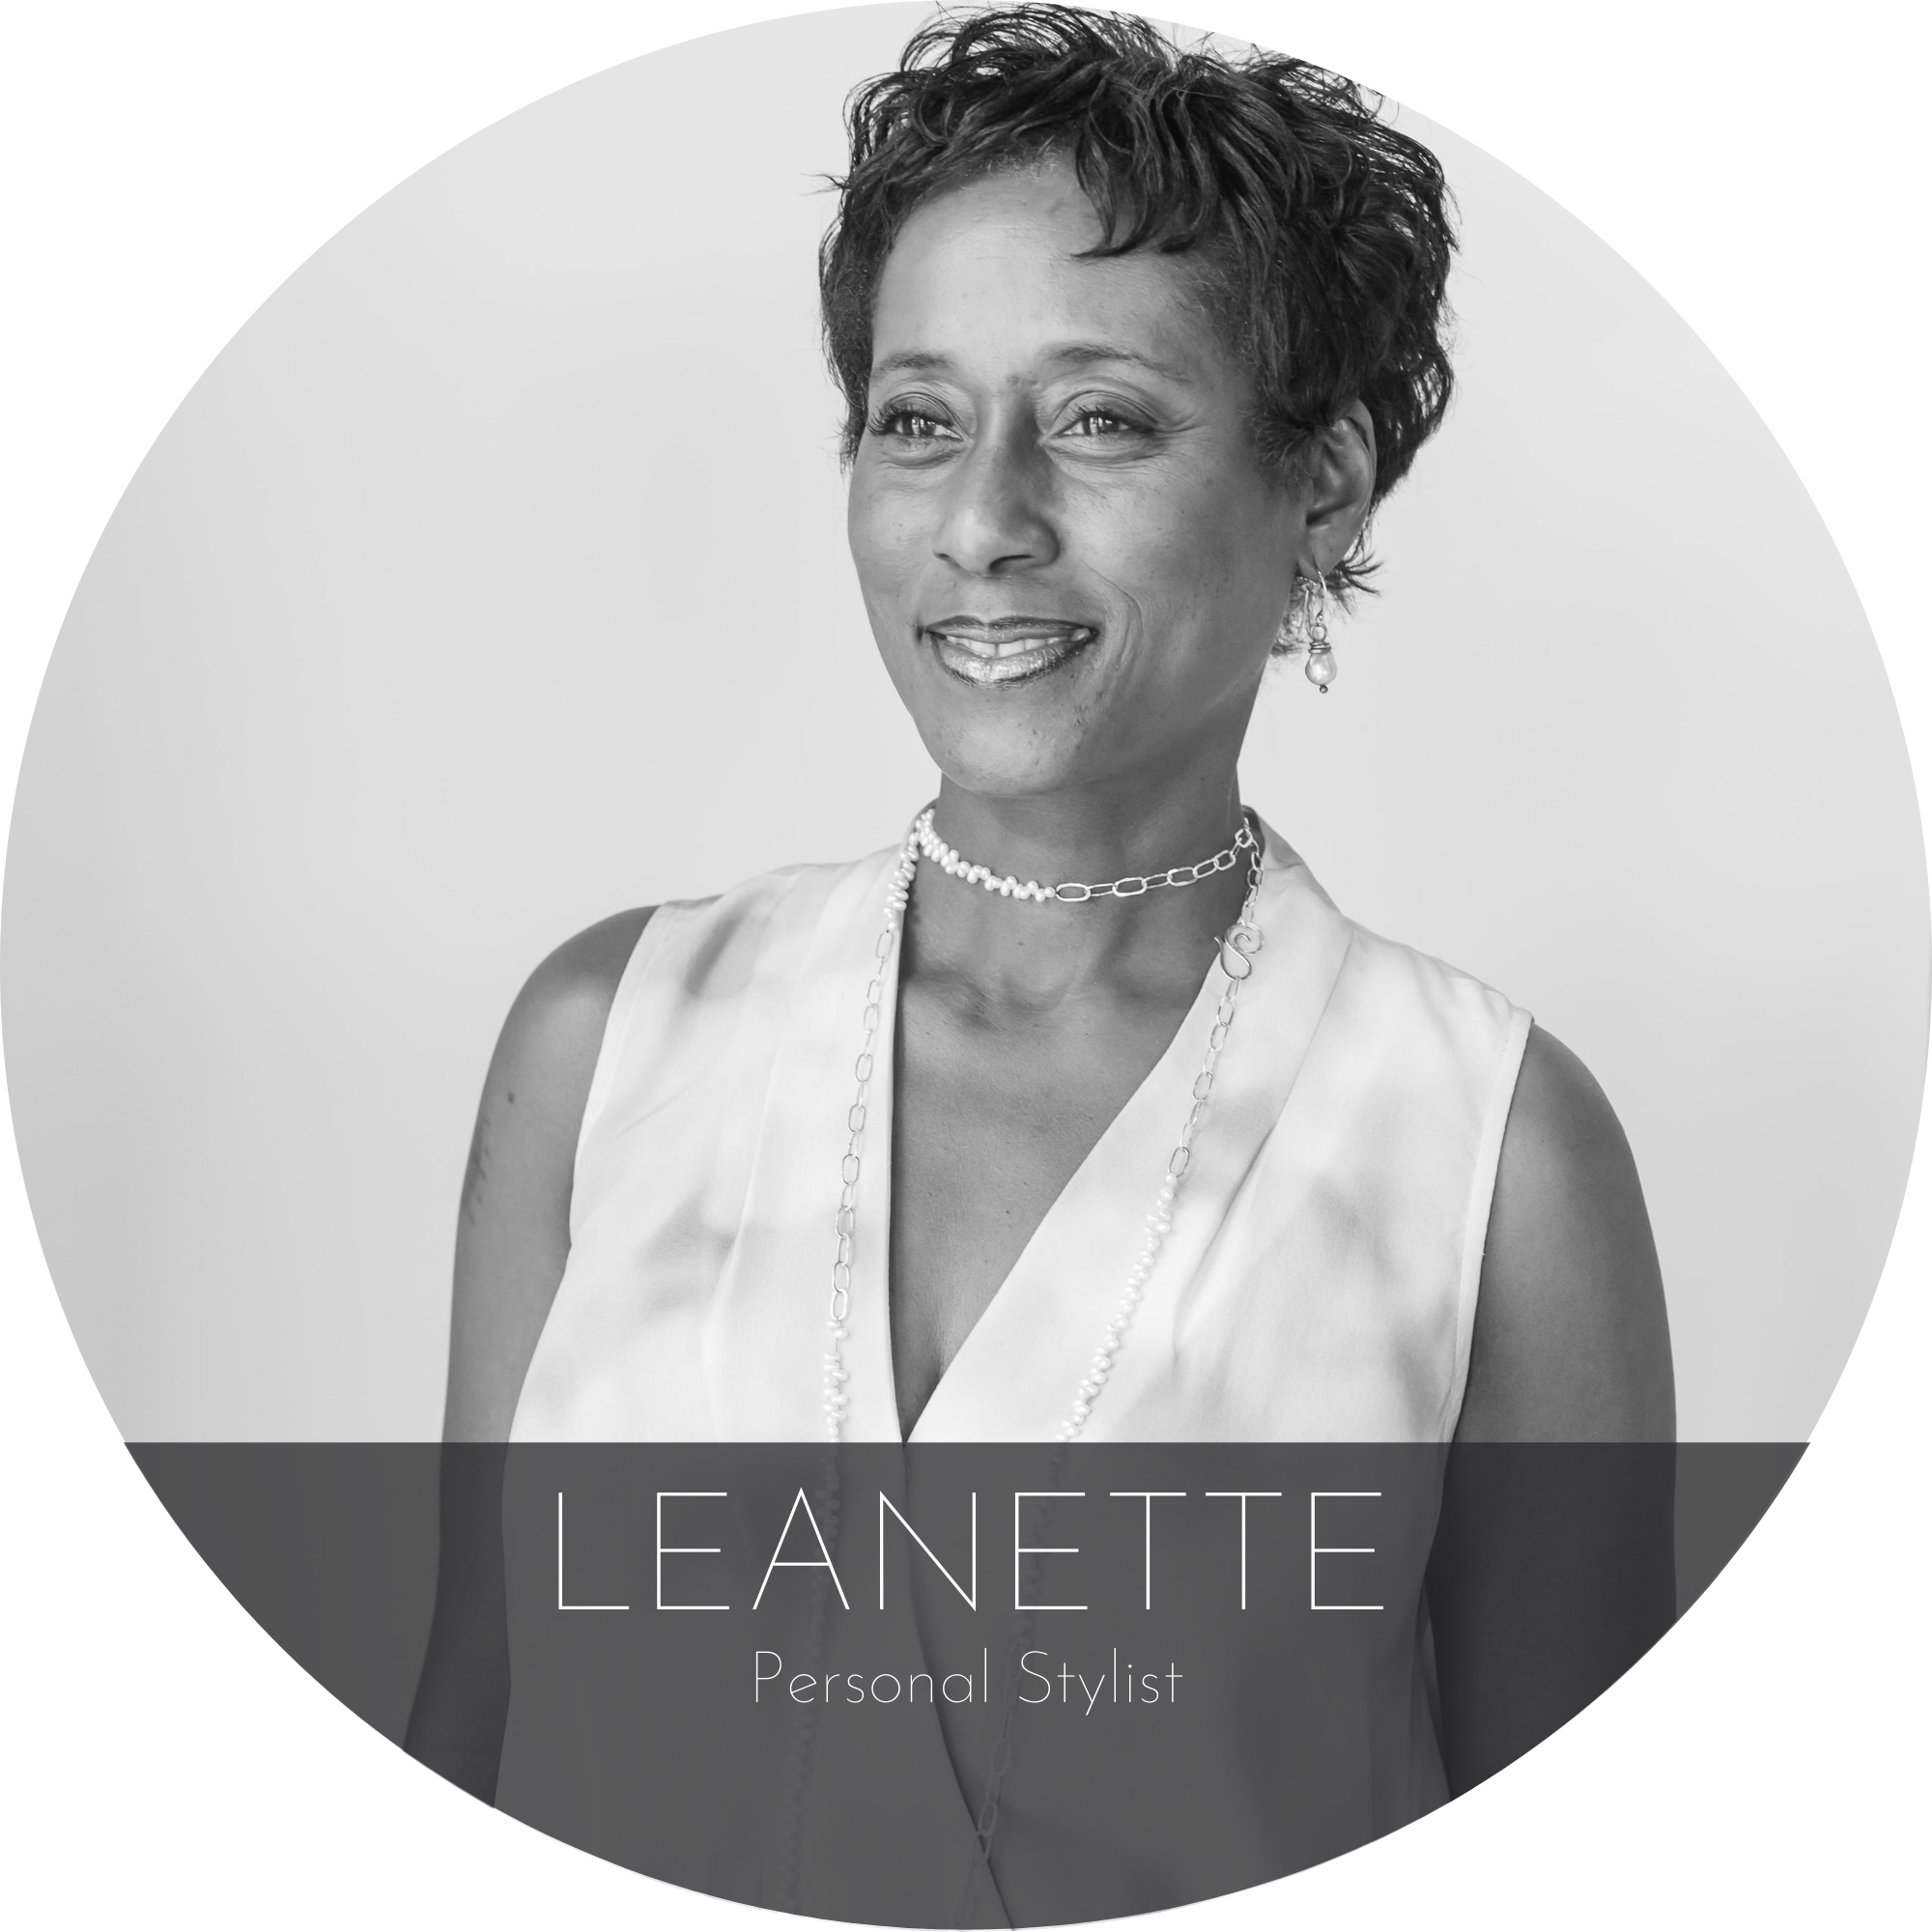 Carriage House Personal Stylist - Leanette Jackson